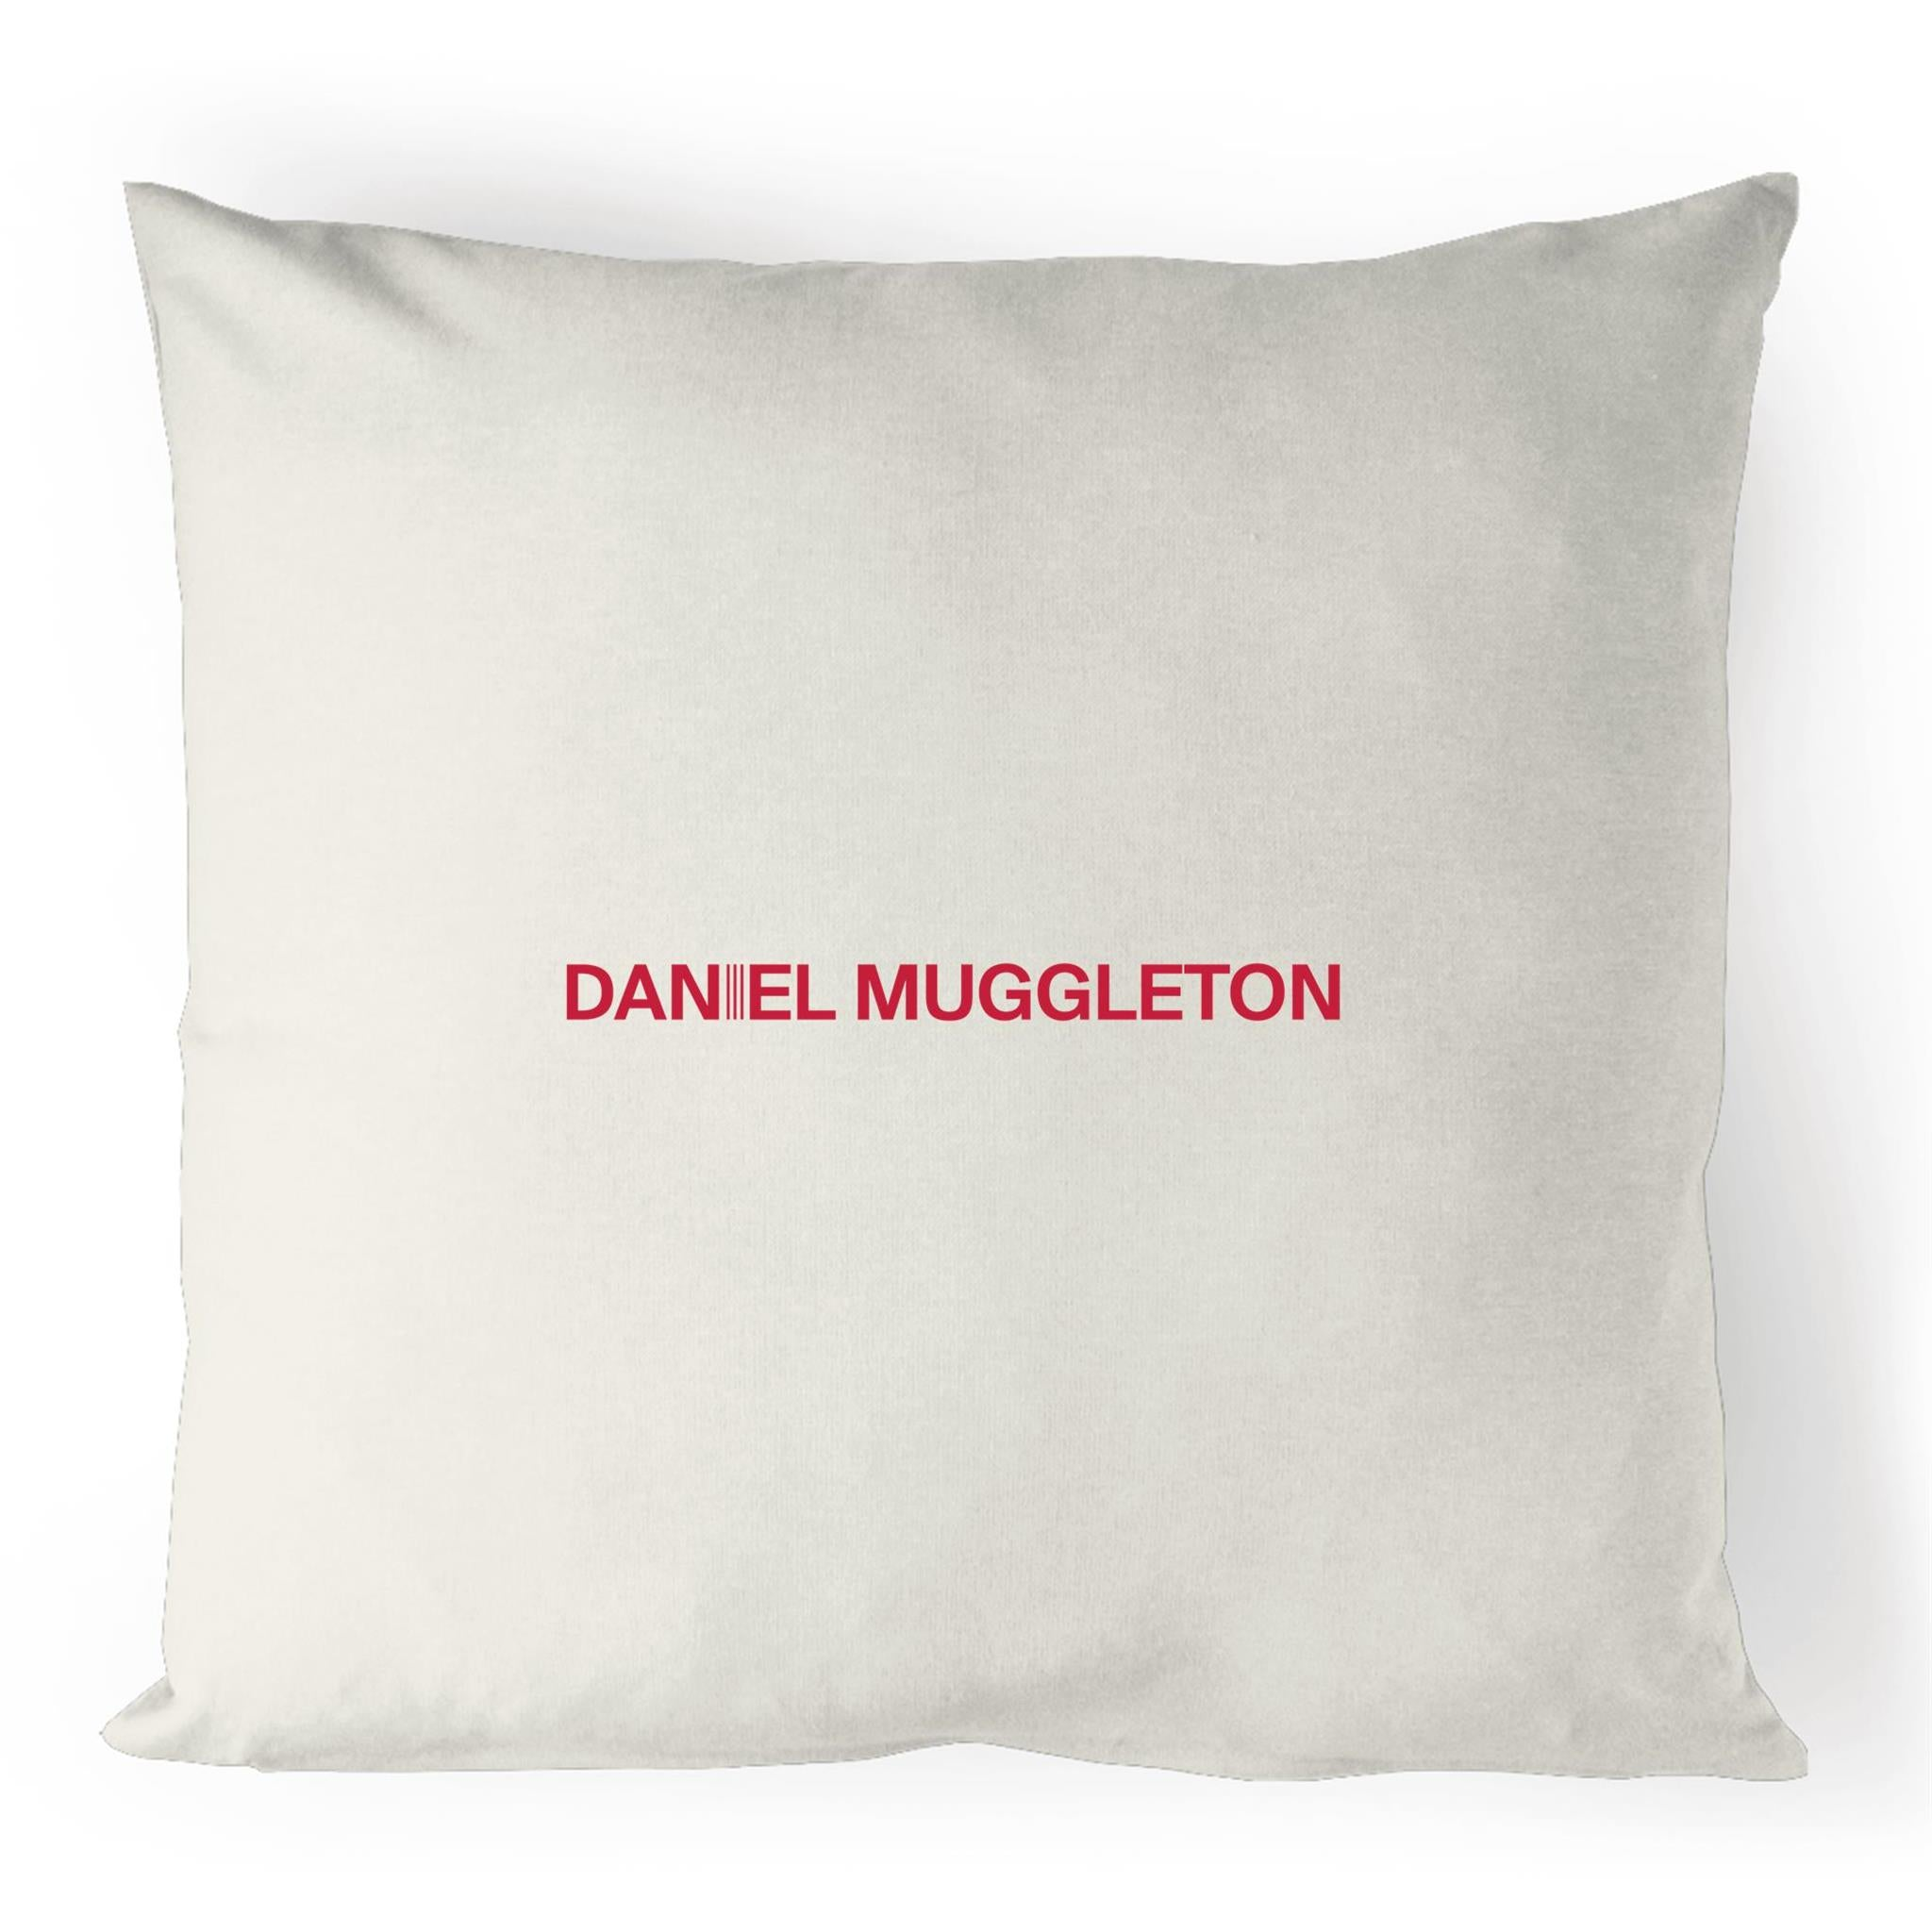 Daniel Muggleton Cushion Cover